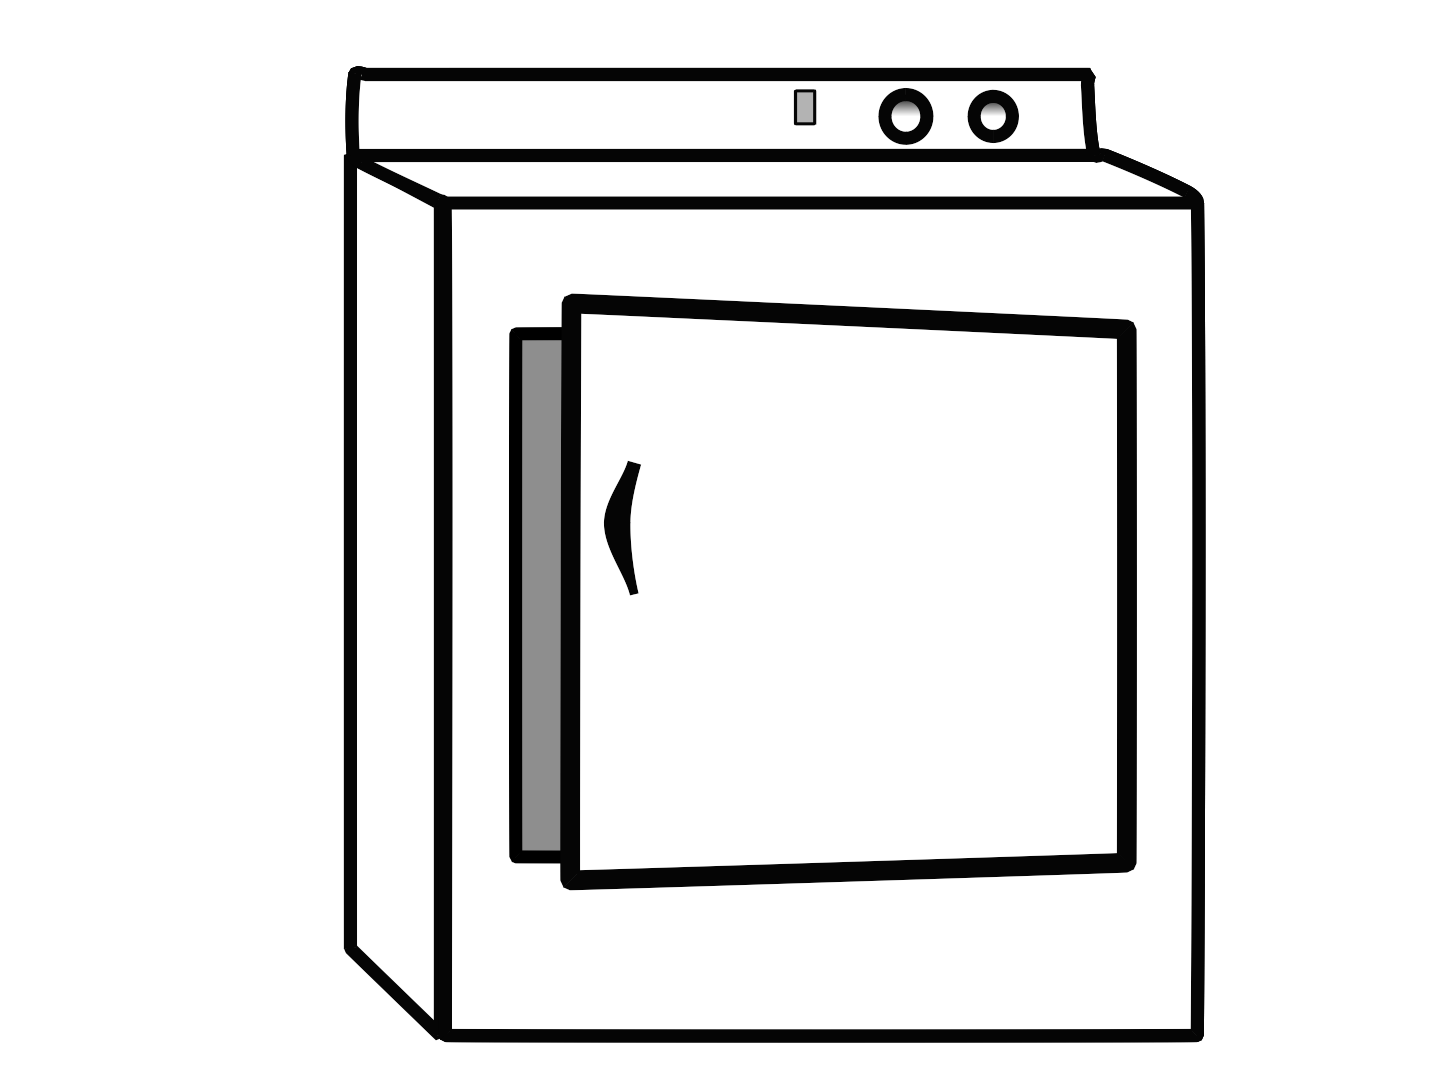 clip royalty free stock Dryer clipart. Clothes for modern transparent.